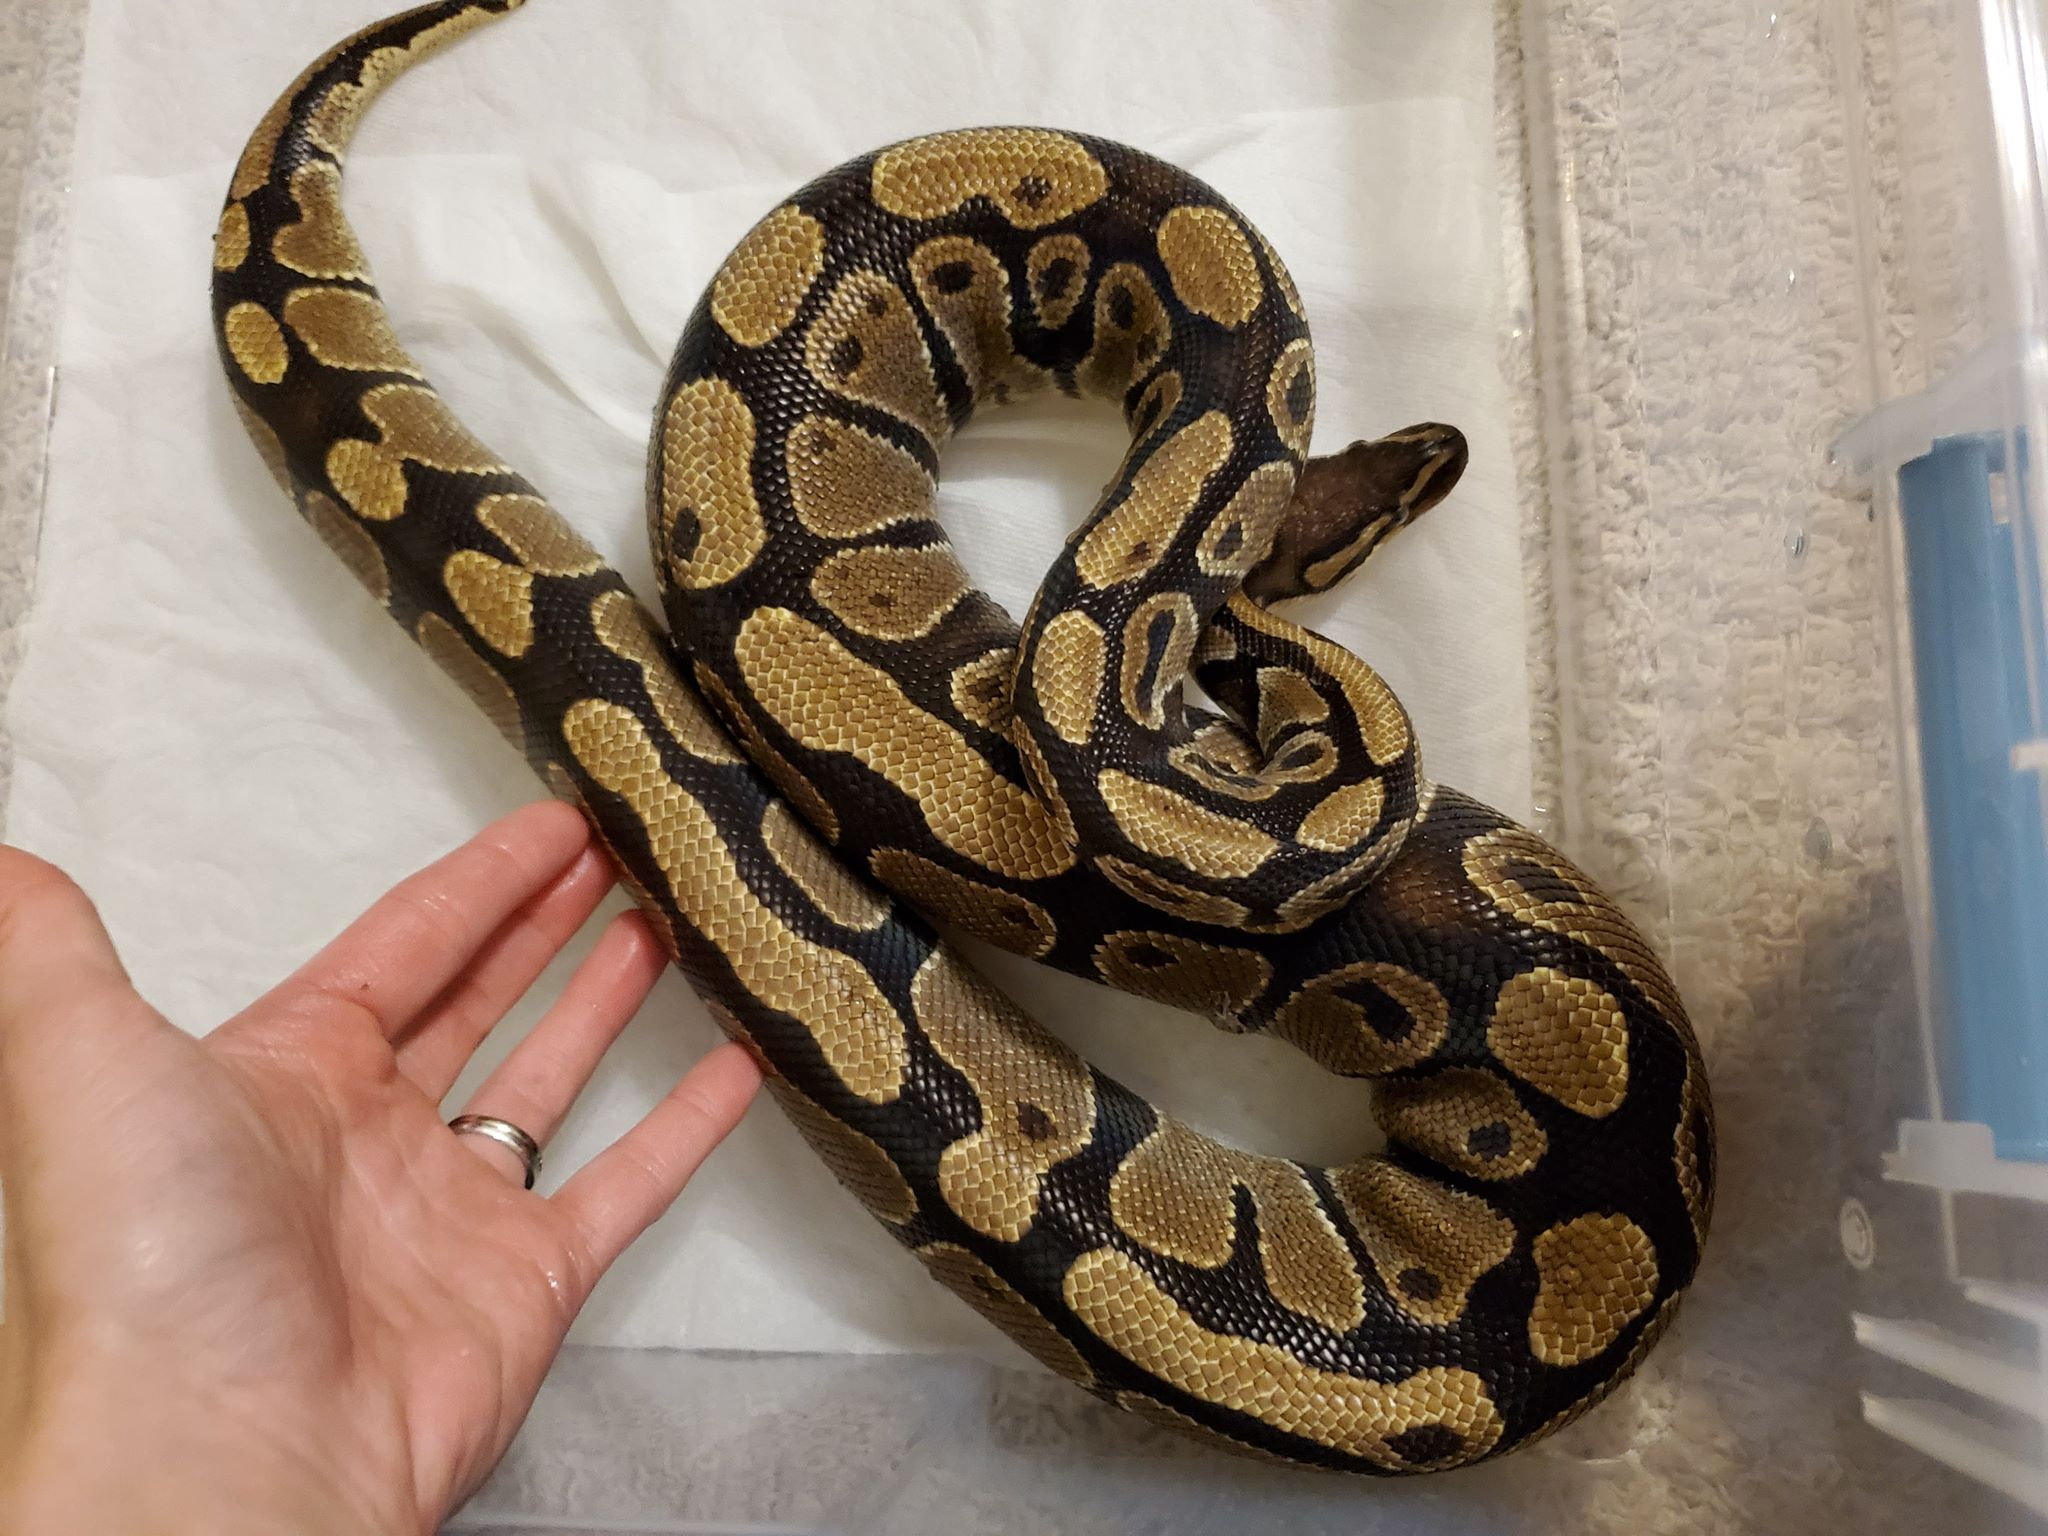 Available Reptiles